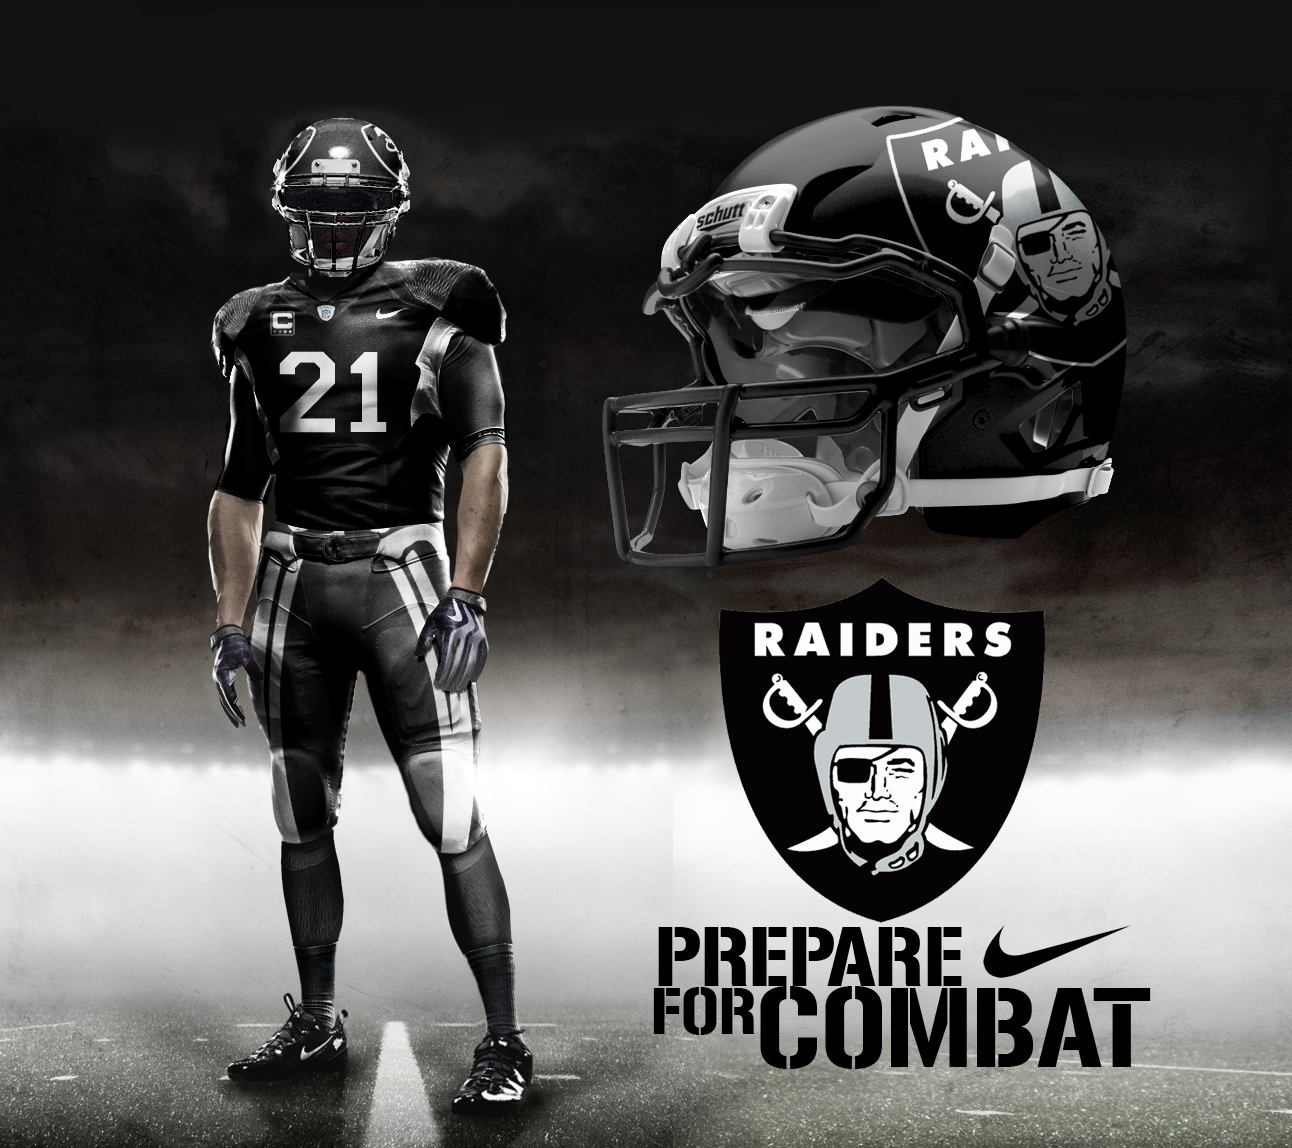 oakland raiders image